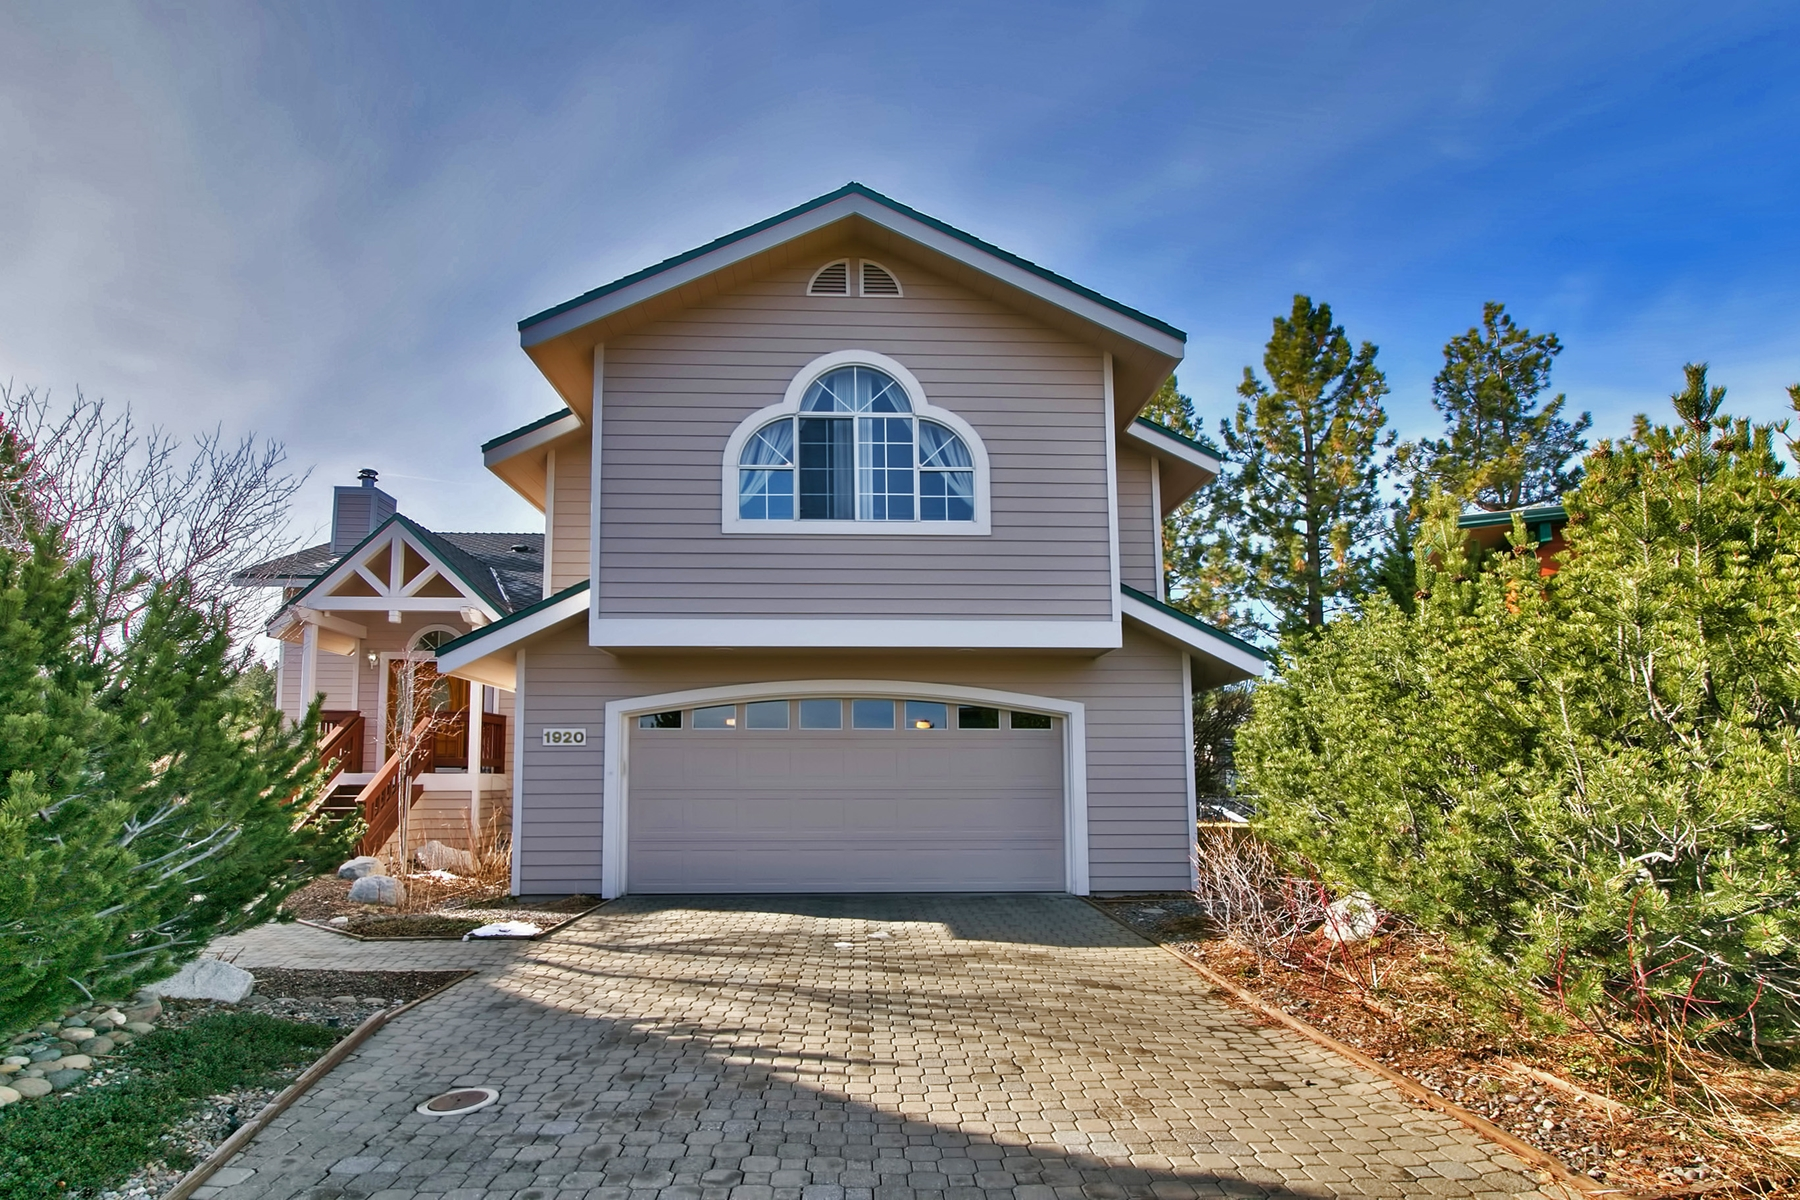 Single Family Home for Active at 1920 Marconi Way South Lake Tahoe, California 96150 United States